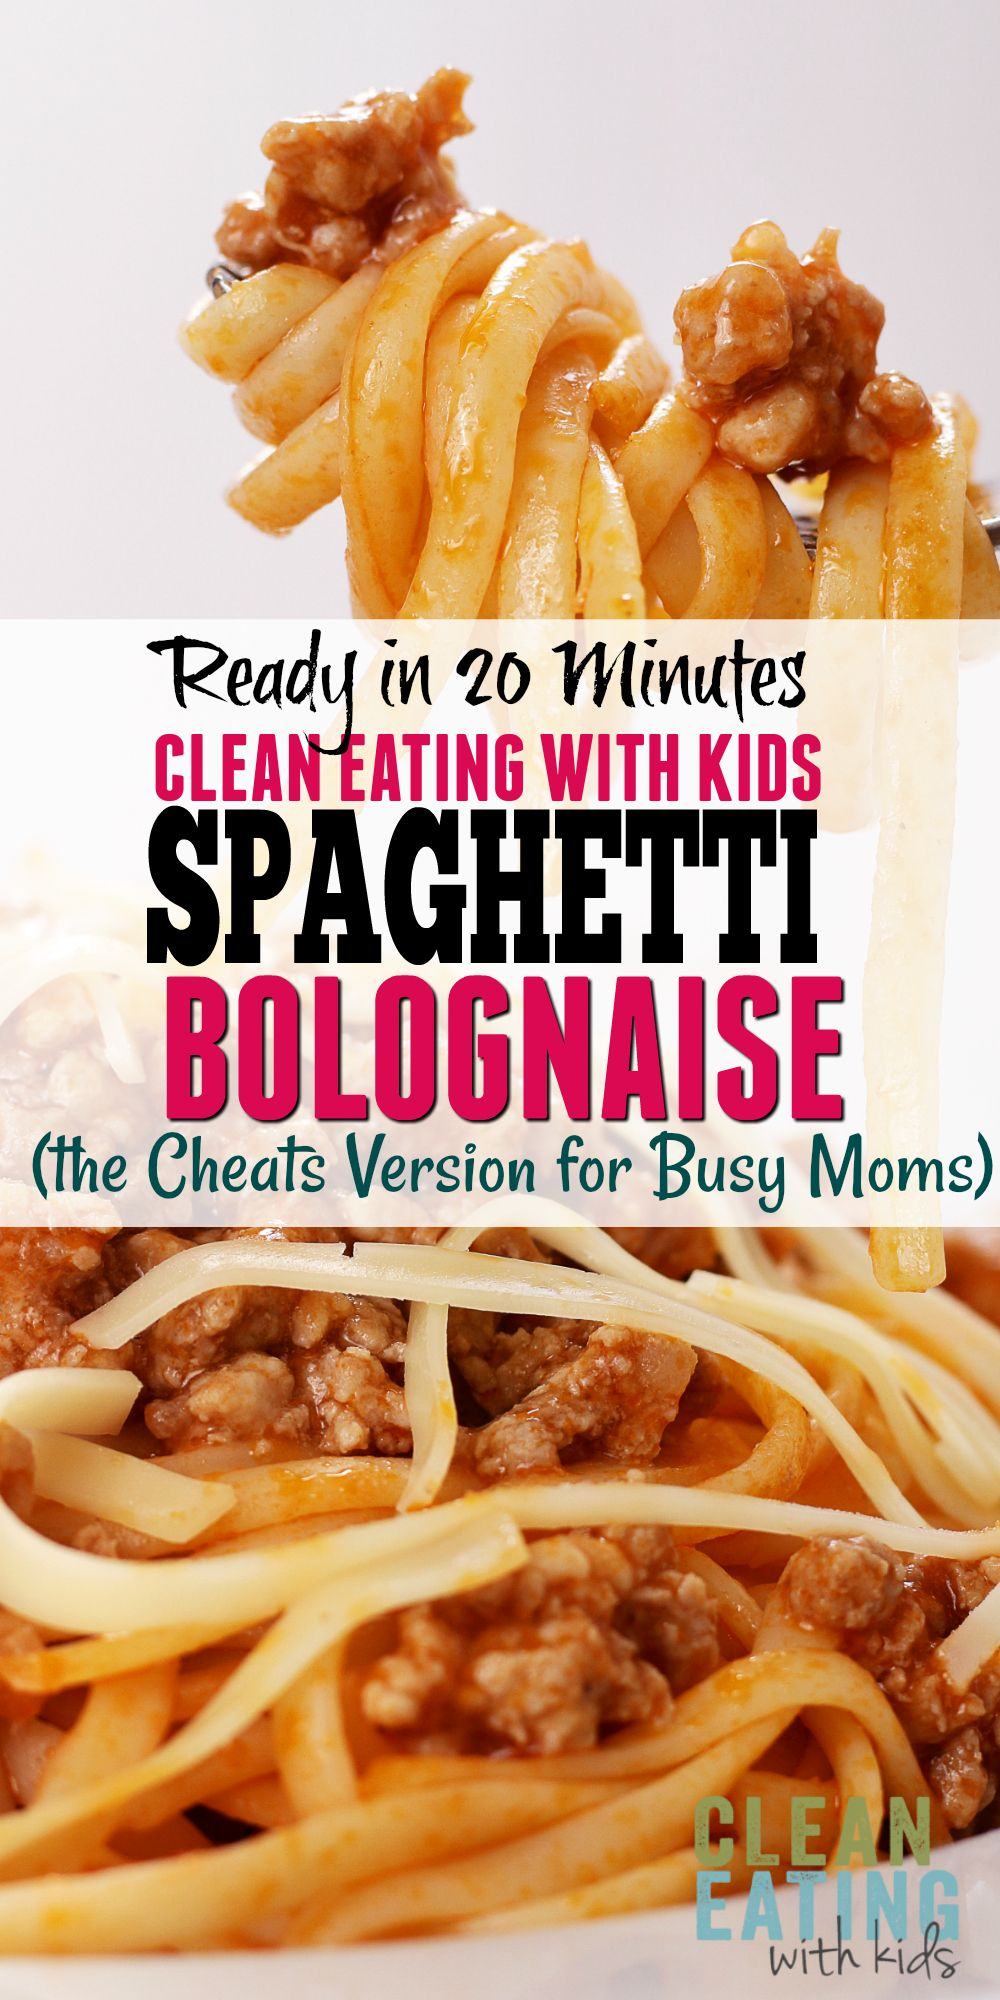 Clean eating spaghetti bolognese the cheat version for busy moms clean eating spaghetti bolognese the cheat version for busy moms real food recipesreal forumfinder Gallery